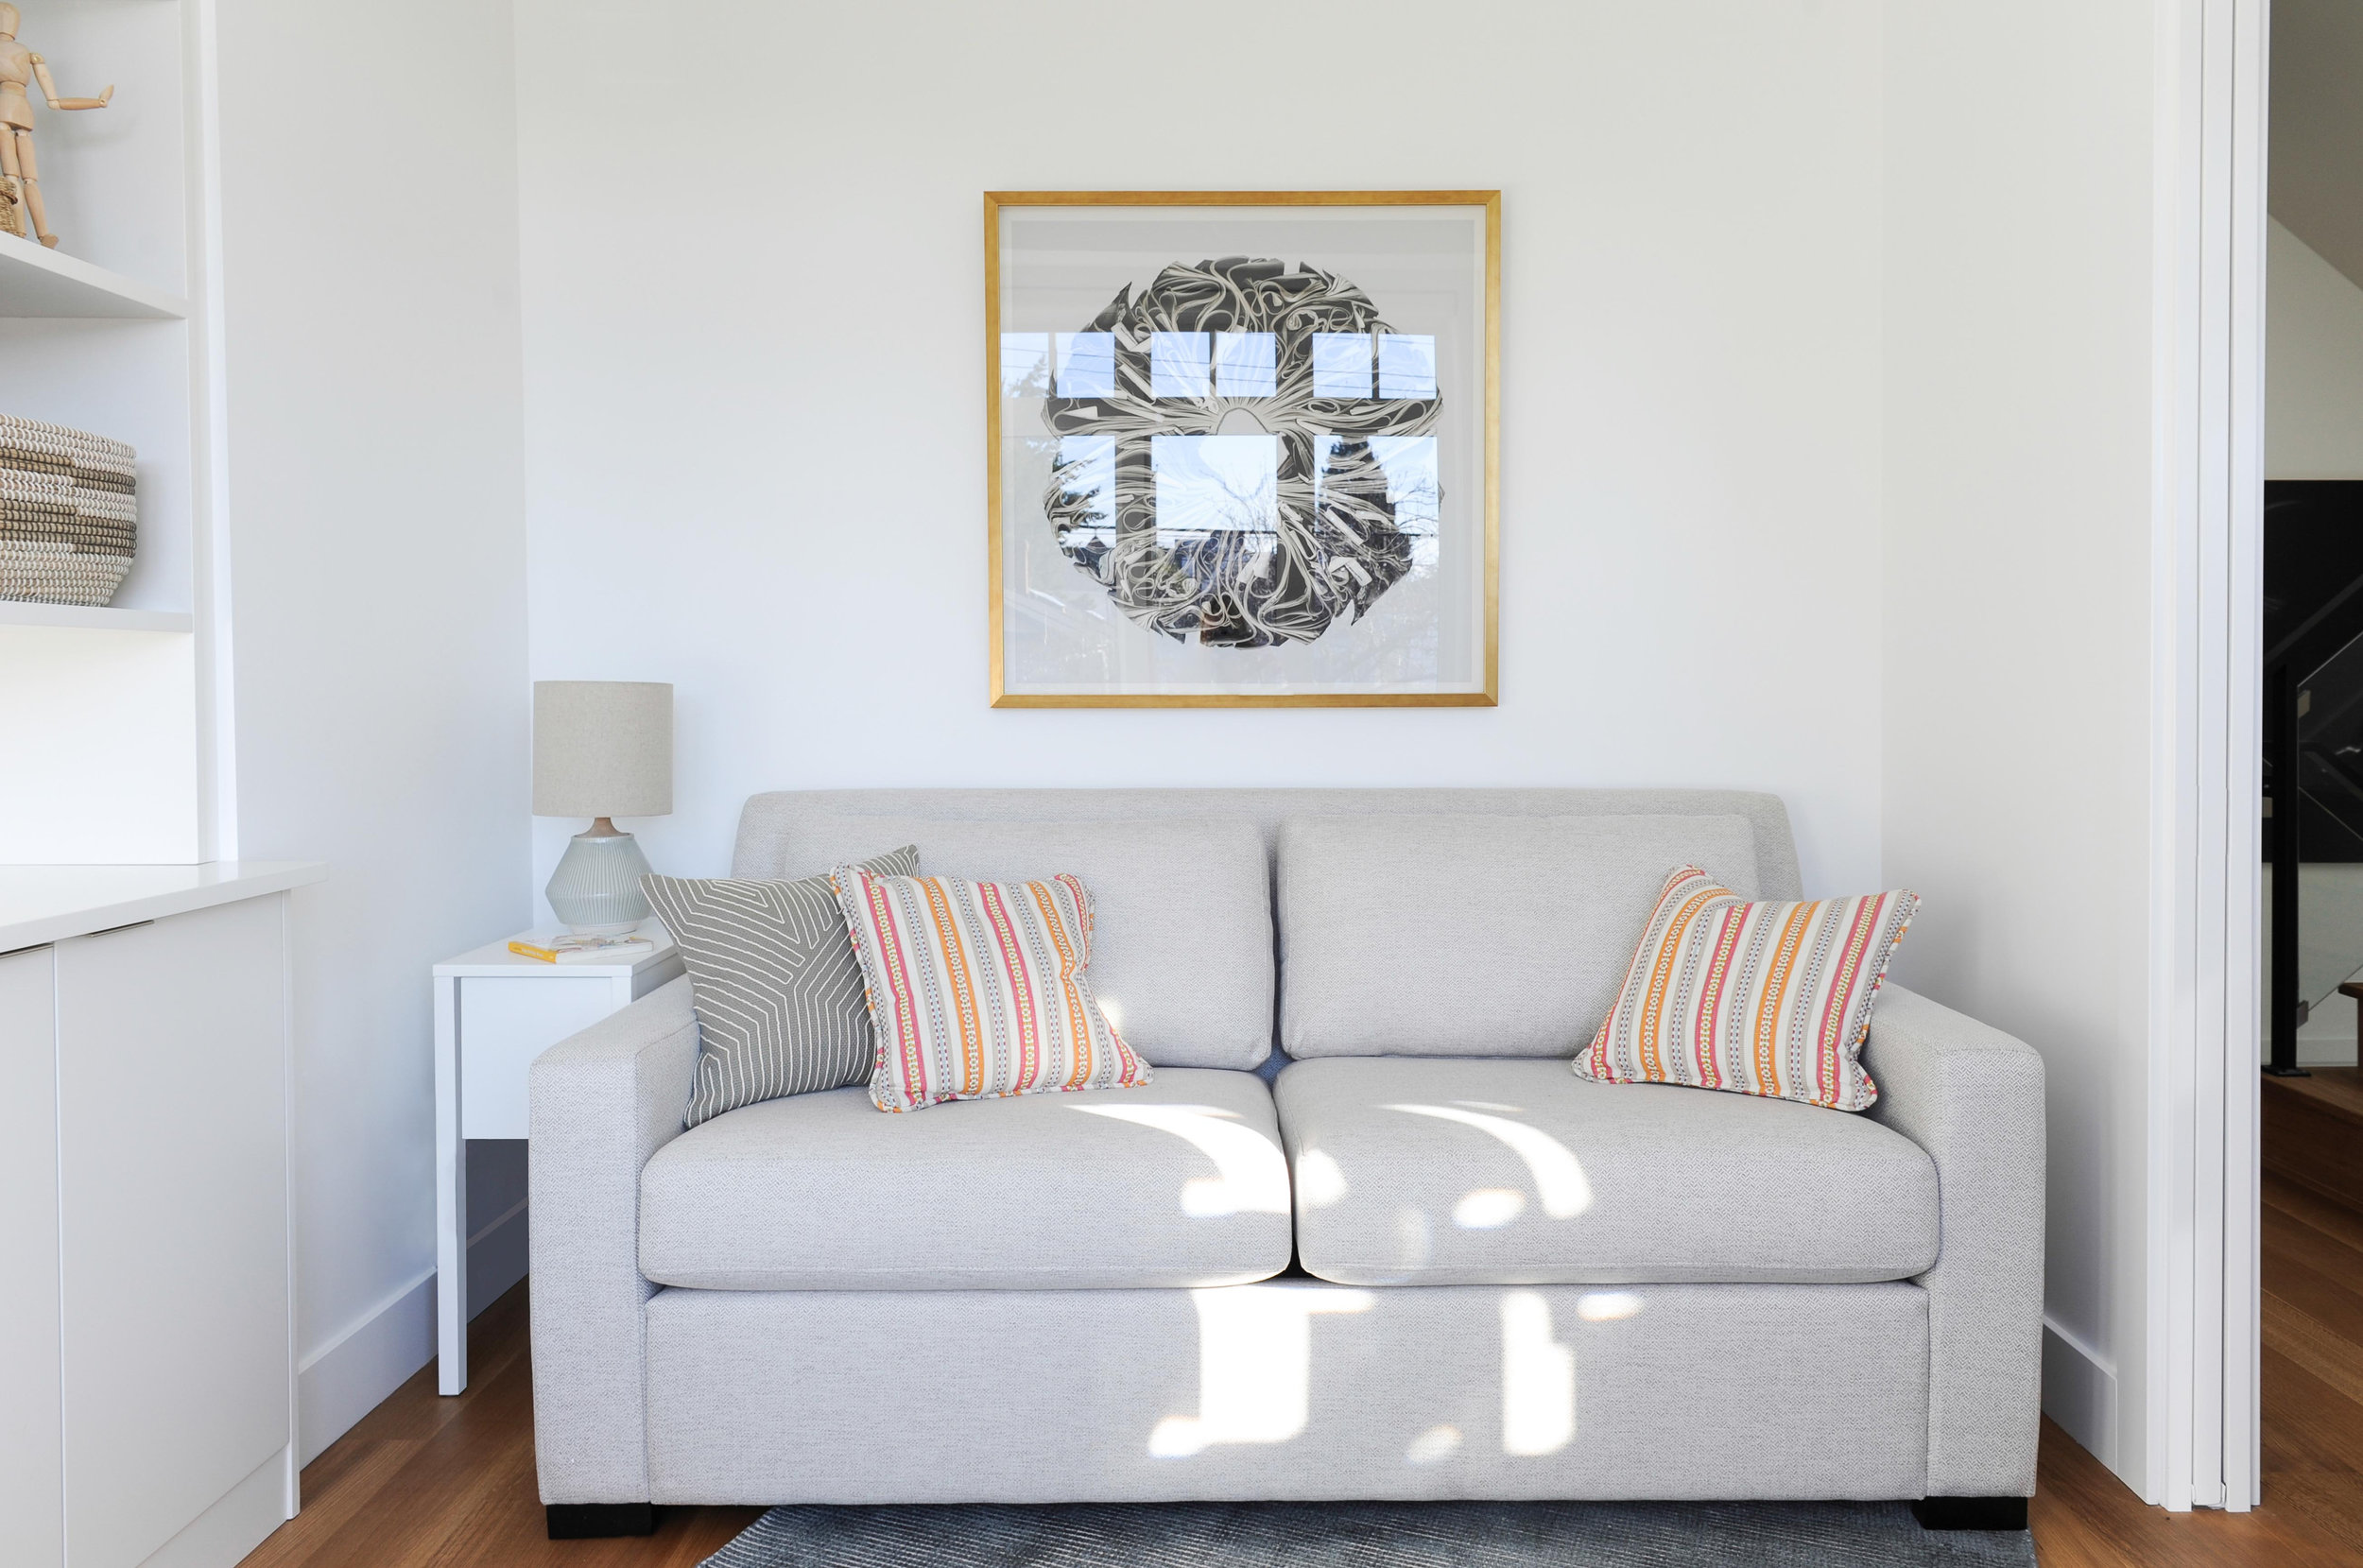 A grey couch and small end table sit in a large alcove and a black and white painting in a brown frame hang above it.